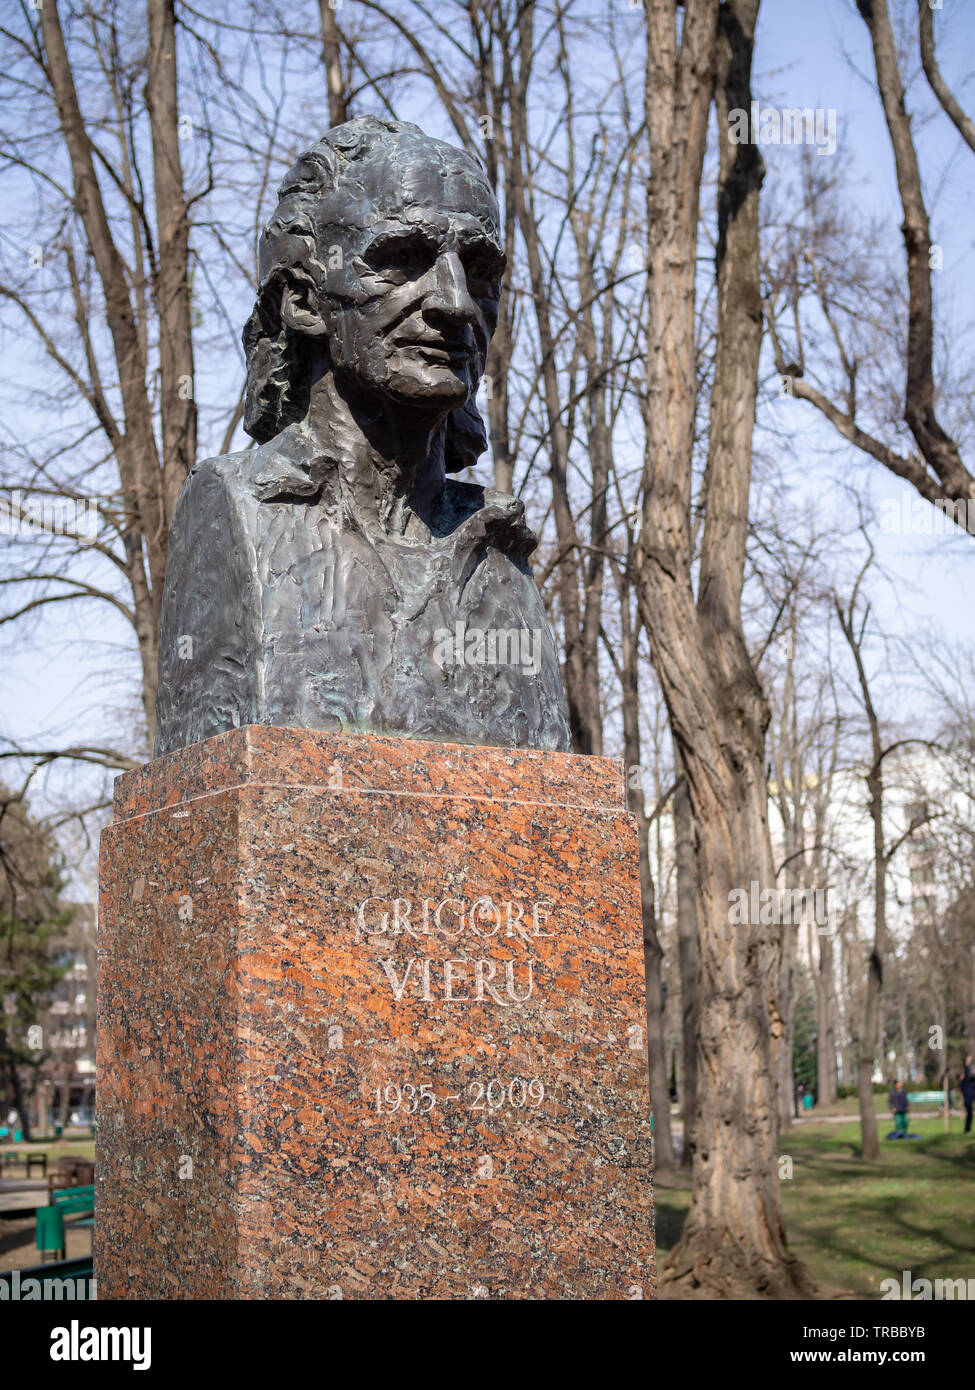 CHISINAU, MOLDOVA-MARCH 21, 2019: Grigore Vieru bust by Victor Macovei & Ruslan Tihonciuc in the Alley of Classics - Stock Image